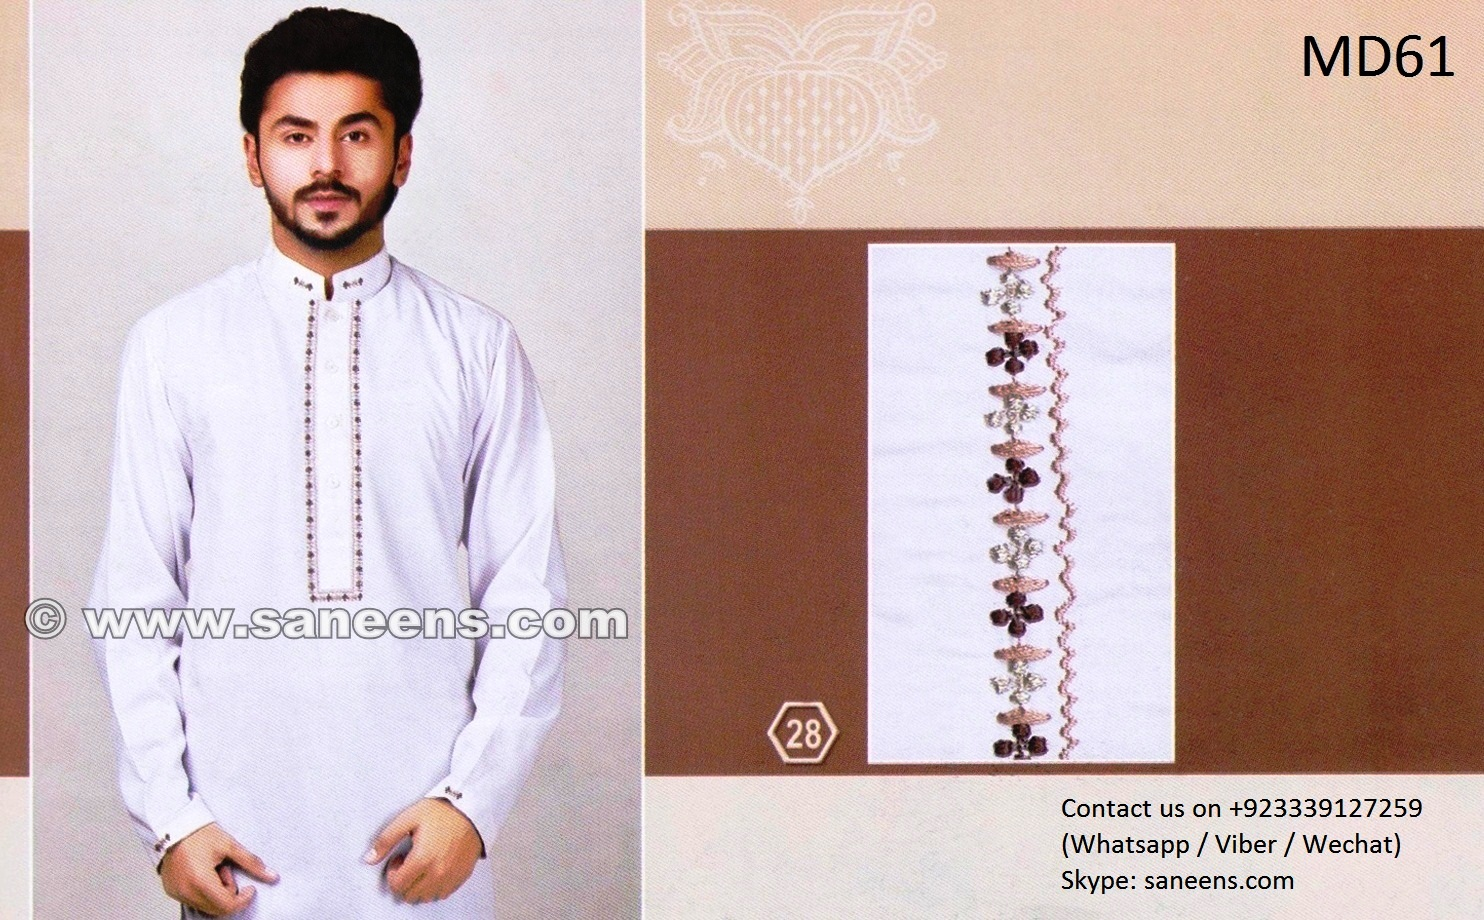 md61-karachi-embroidery-vol-2.jpg